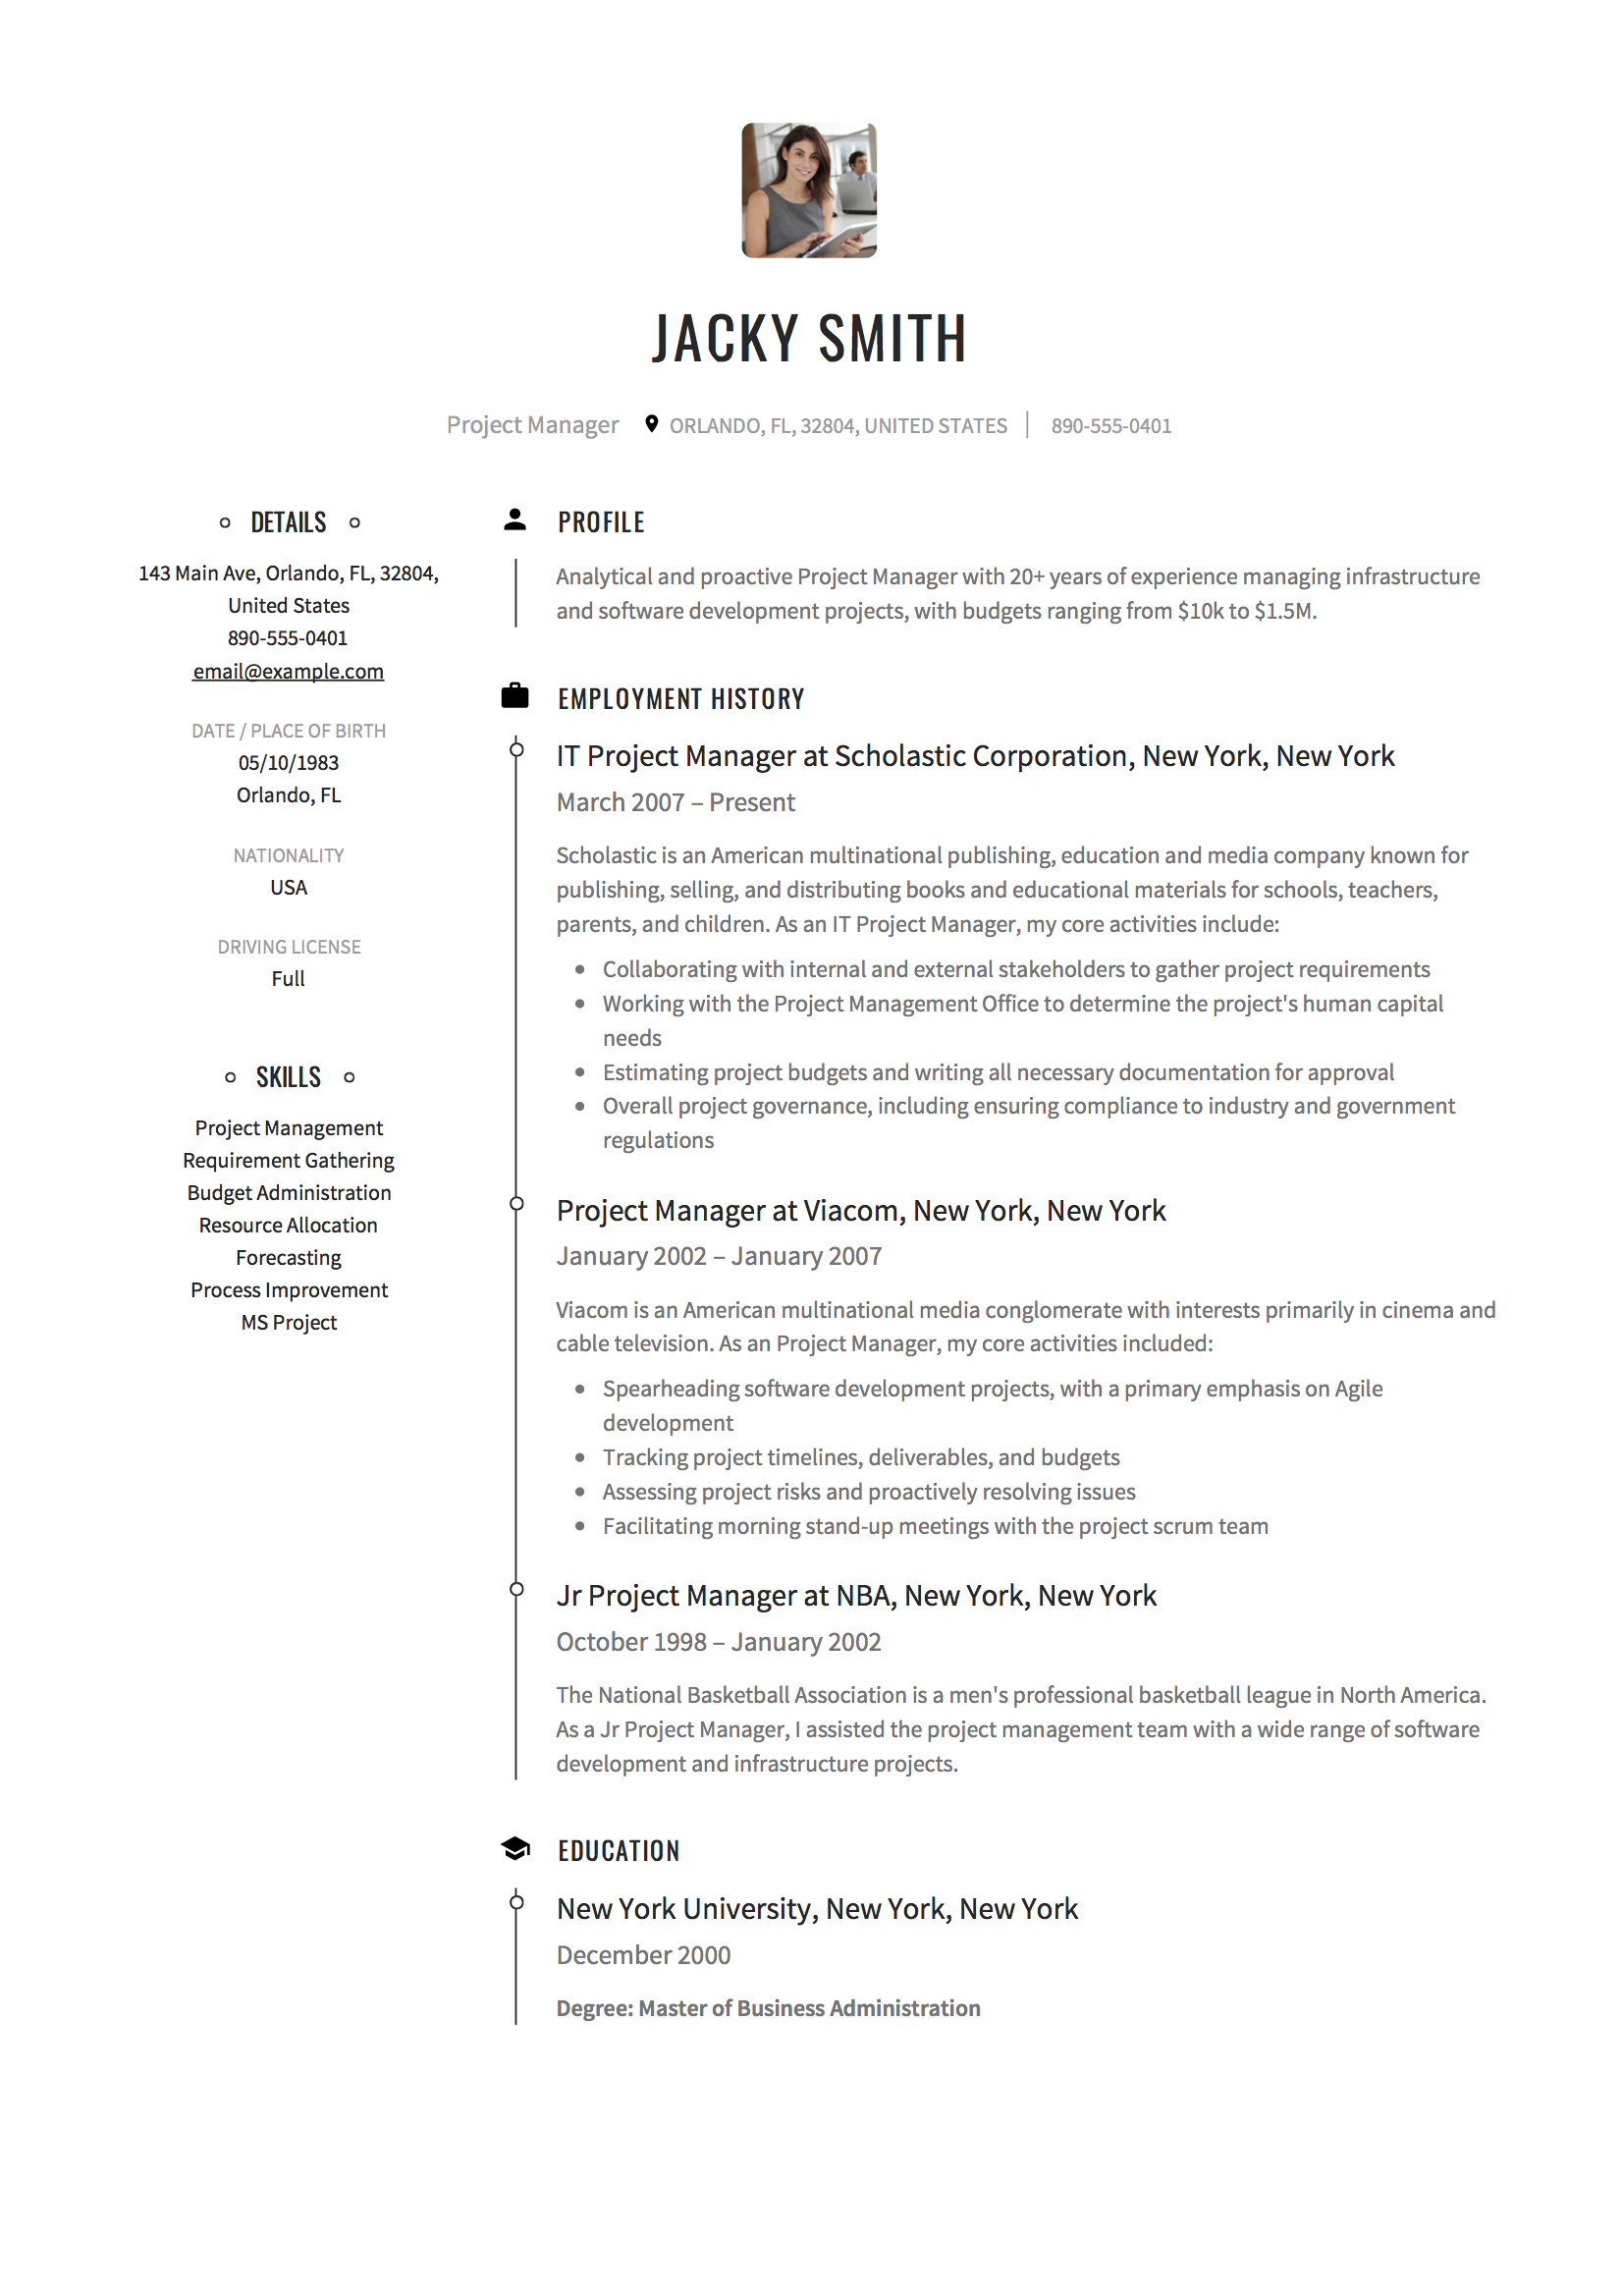 project manager resume examples full guide pdf word modern clinic political candidate Resume Modern Project Manager Resume